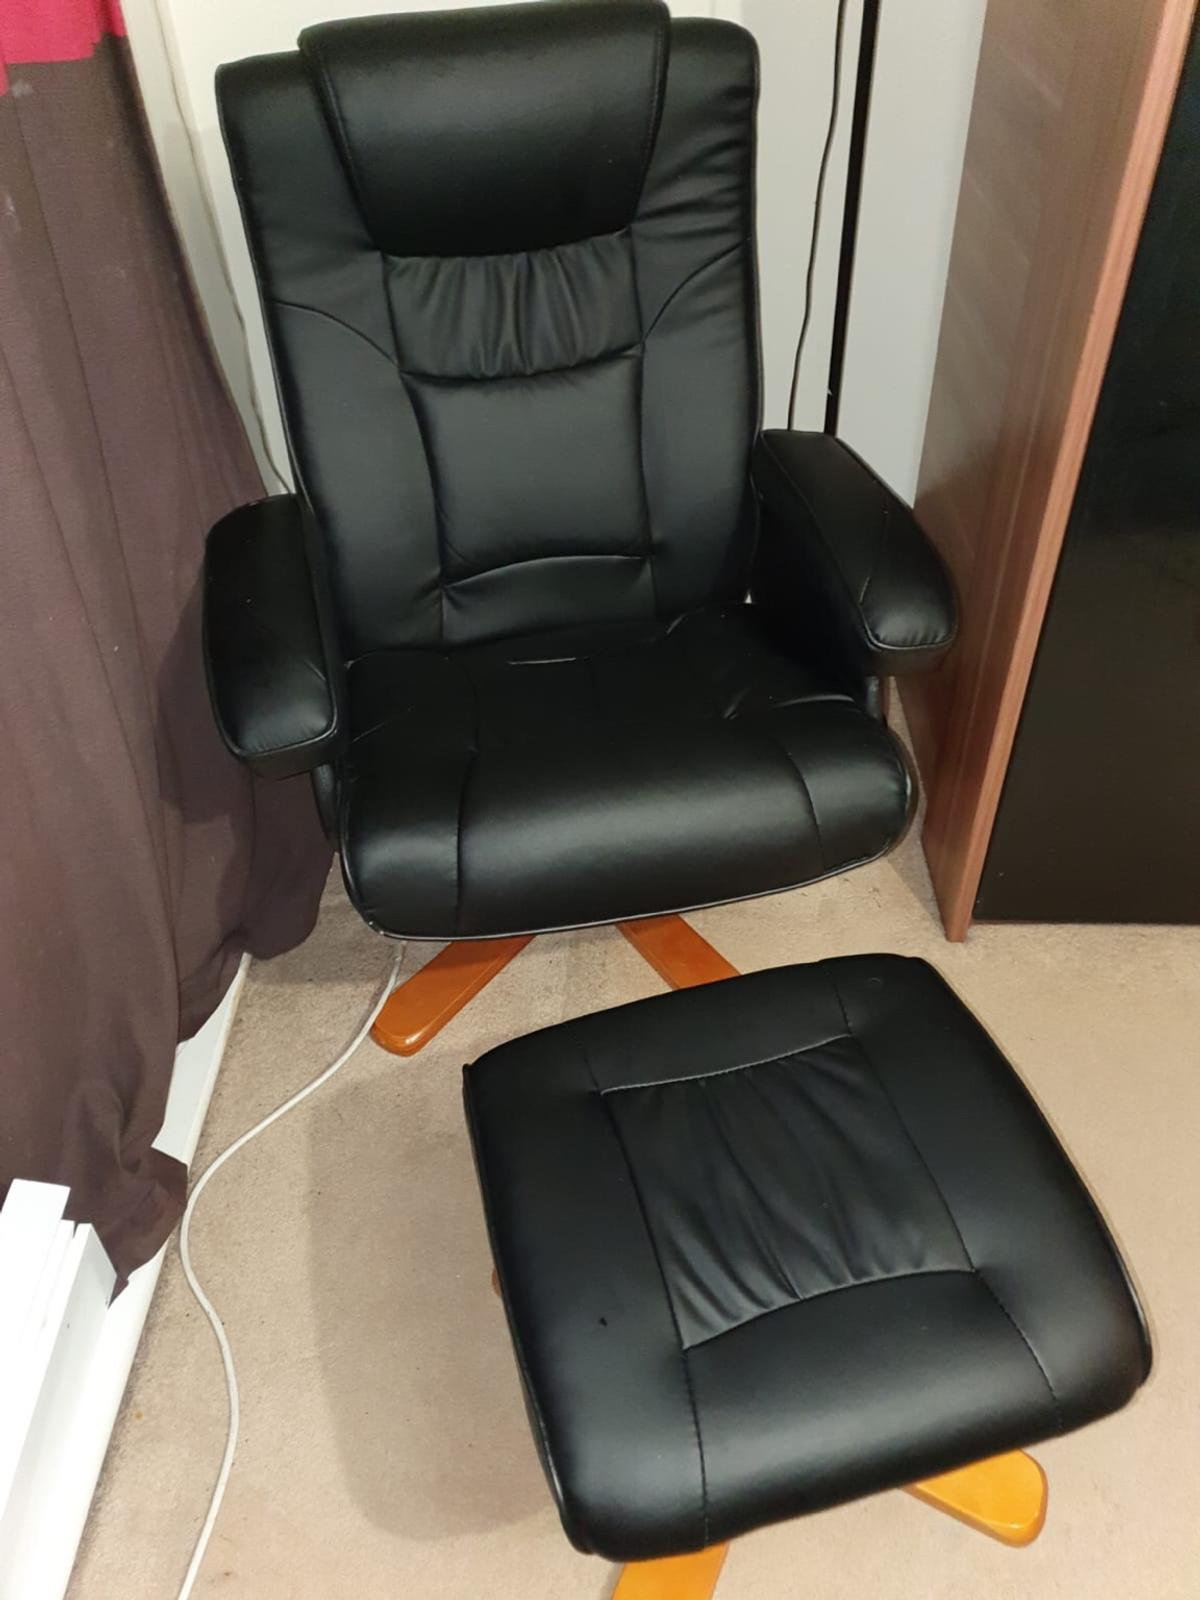 Picture of: Black Faux Leather Swivel Chair Footstool In Se12 London For 50 00 For Sale Shpock